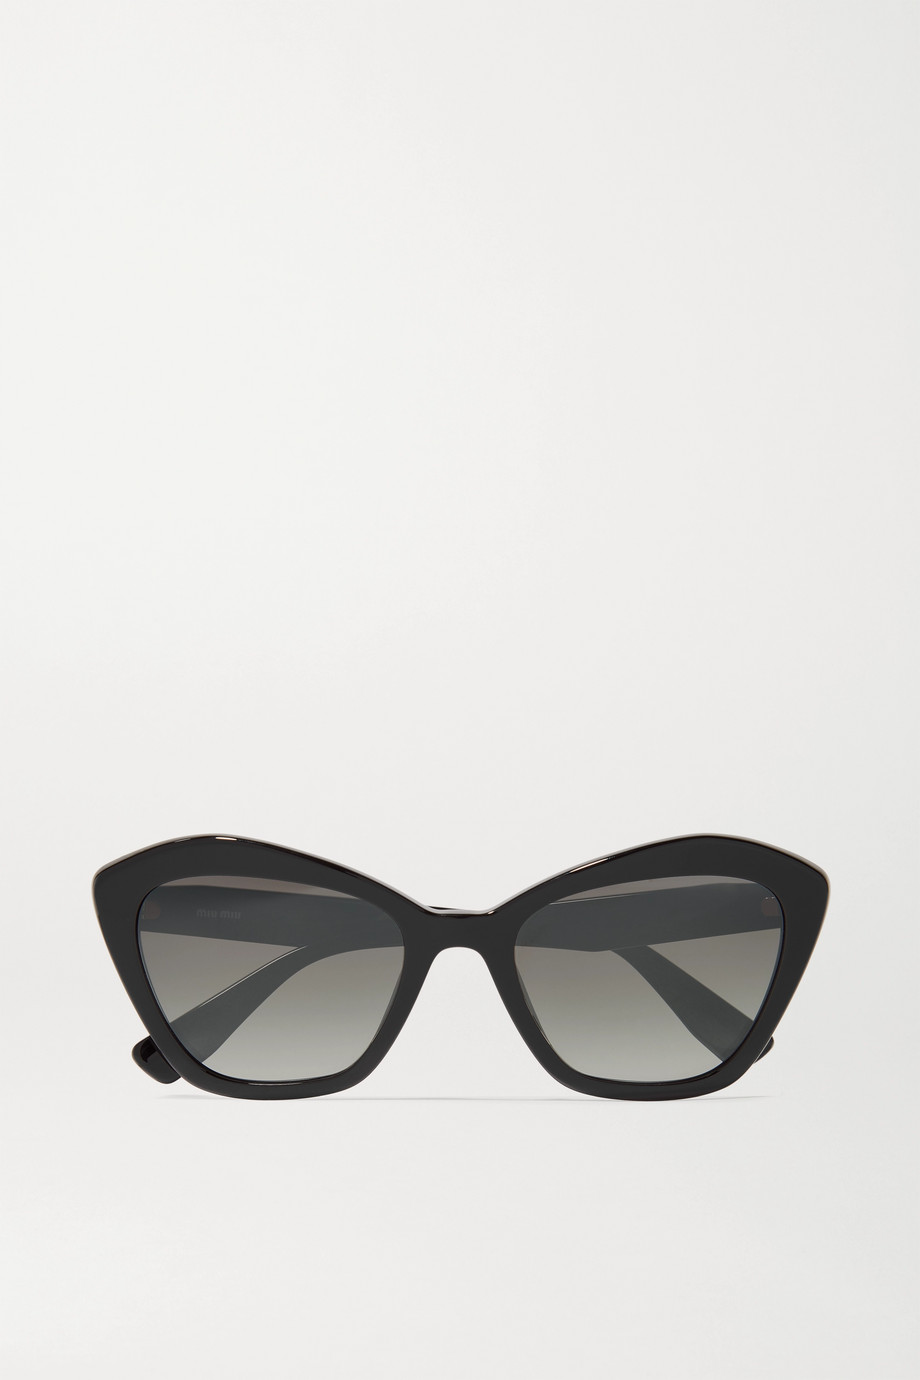 Miu Miu Eyewear Cat-eye acetate sunglasses